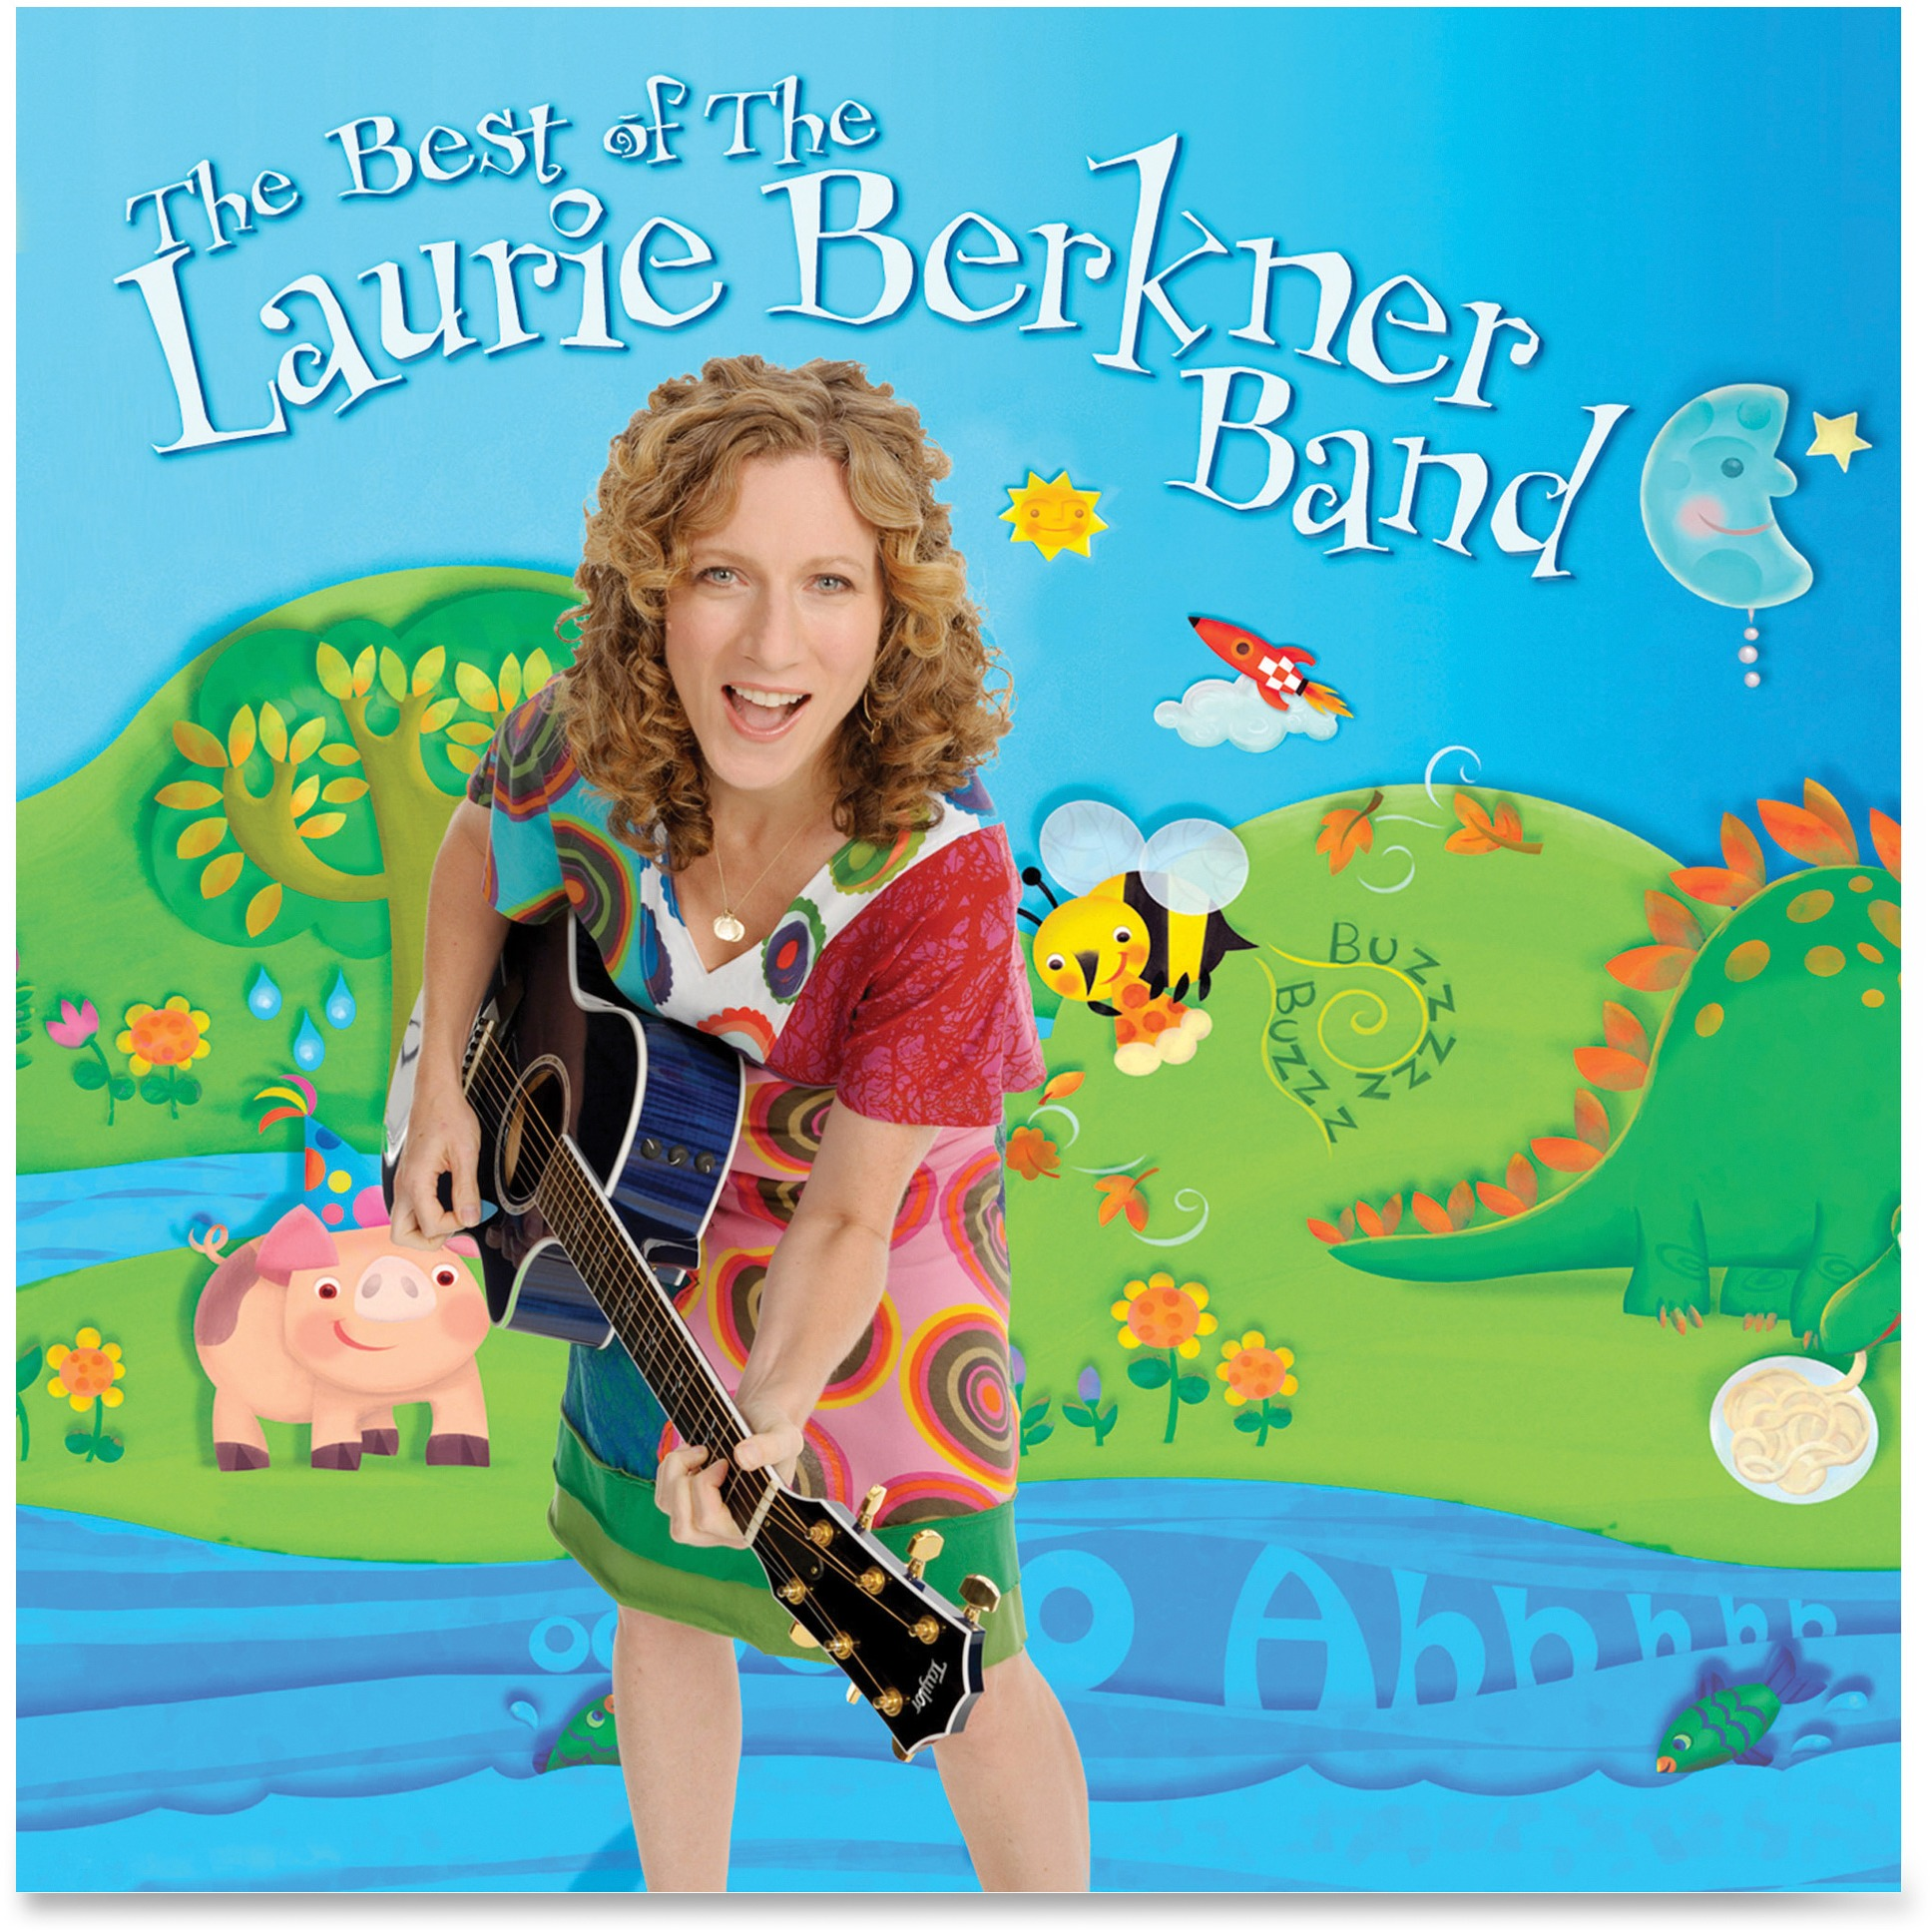 Flipside, FLPM10606, Best of the Laurie Berkner Band CD, 1